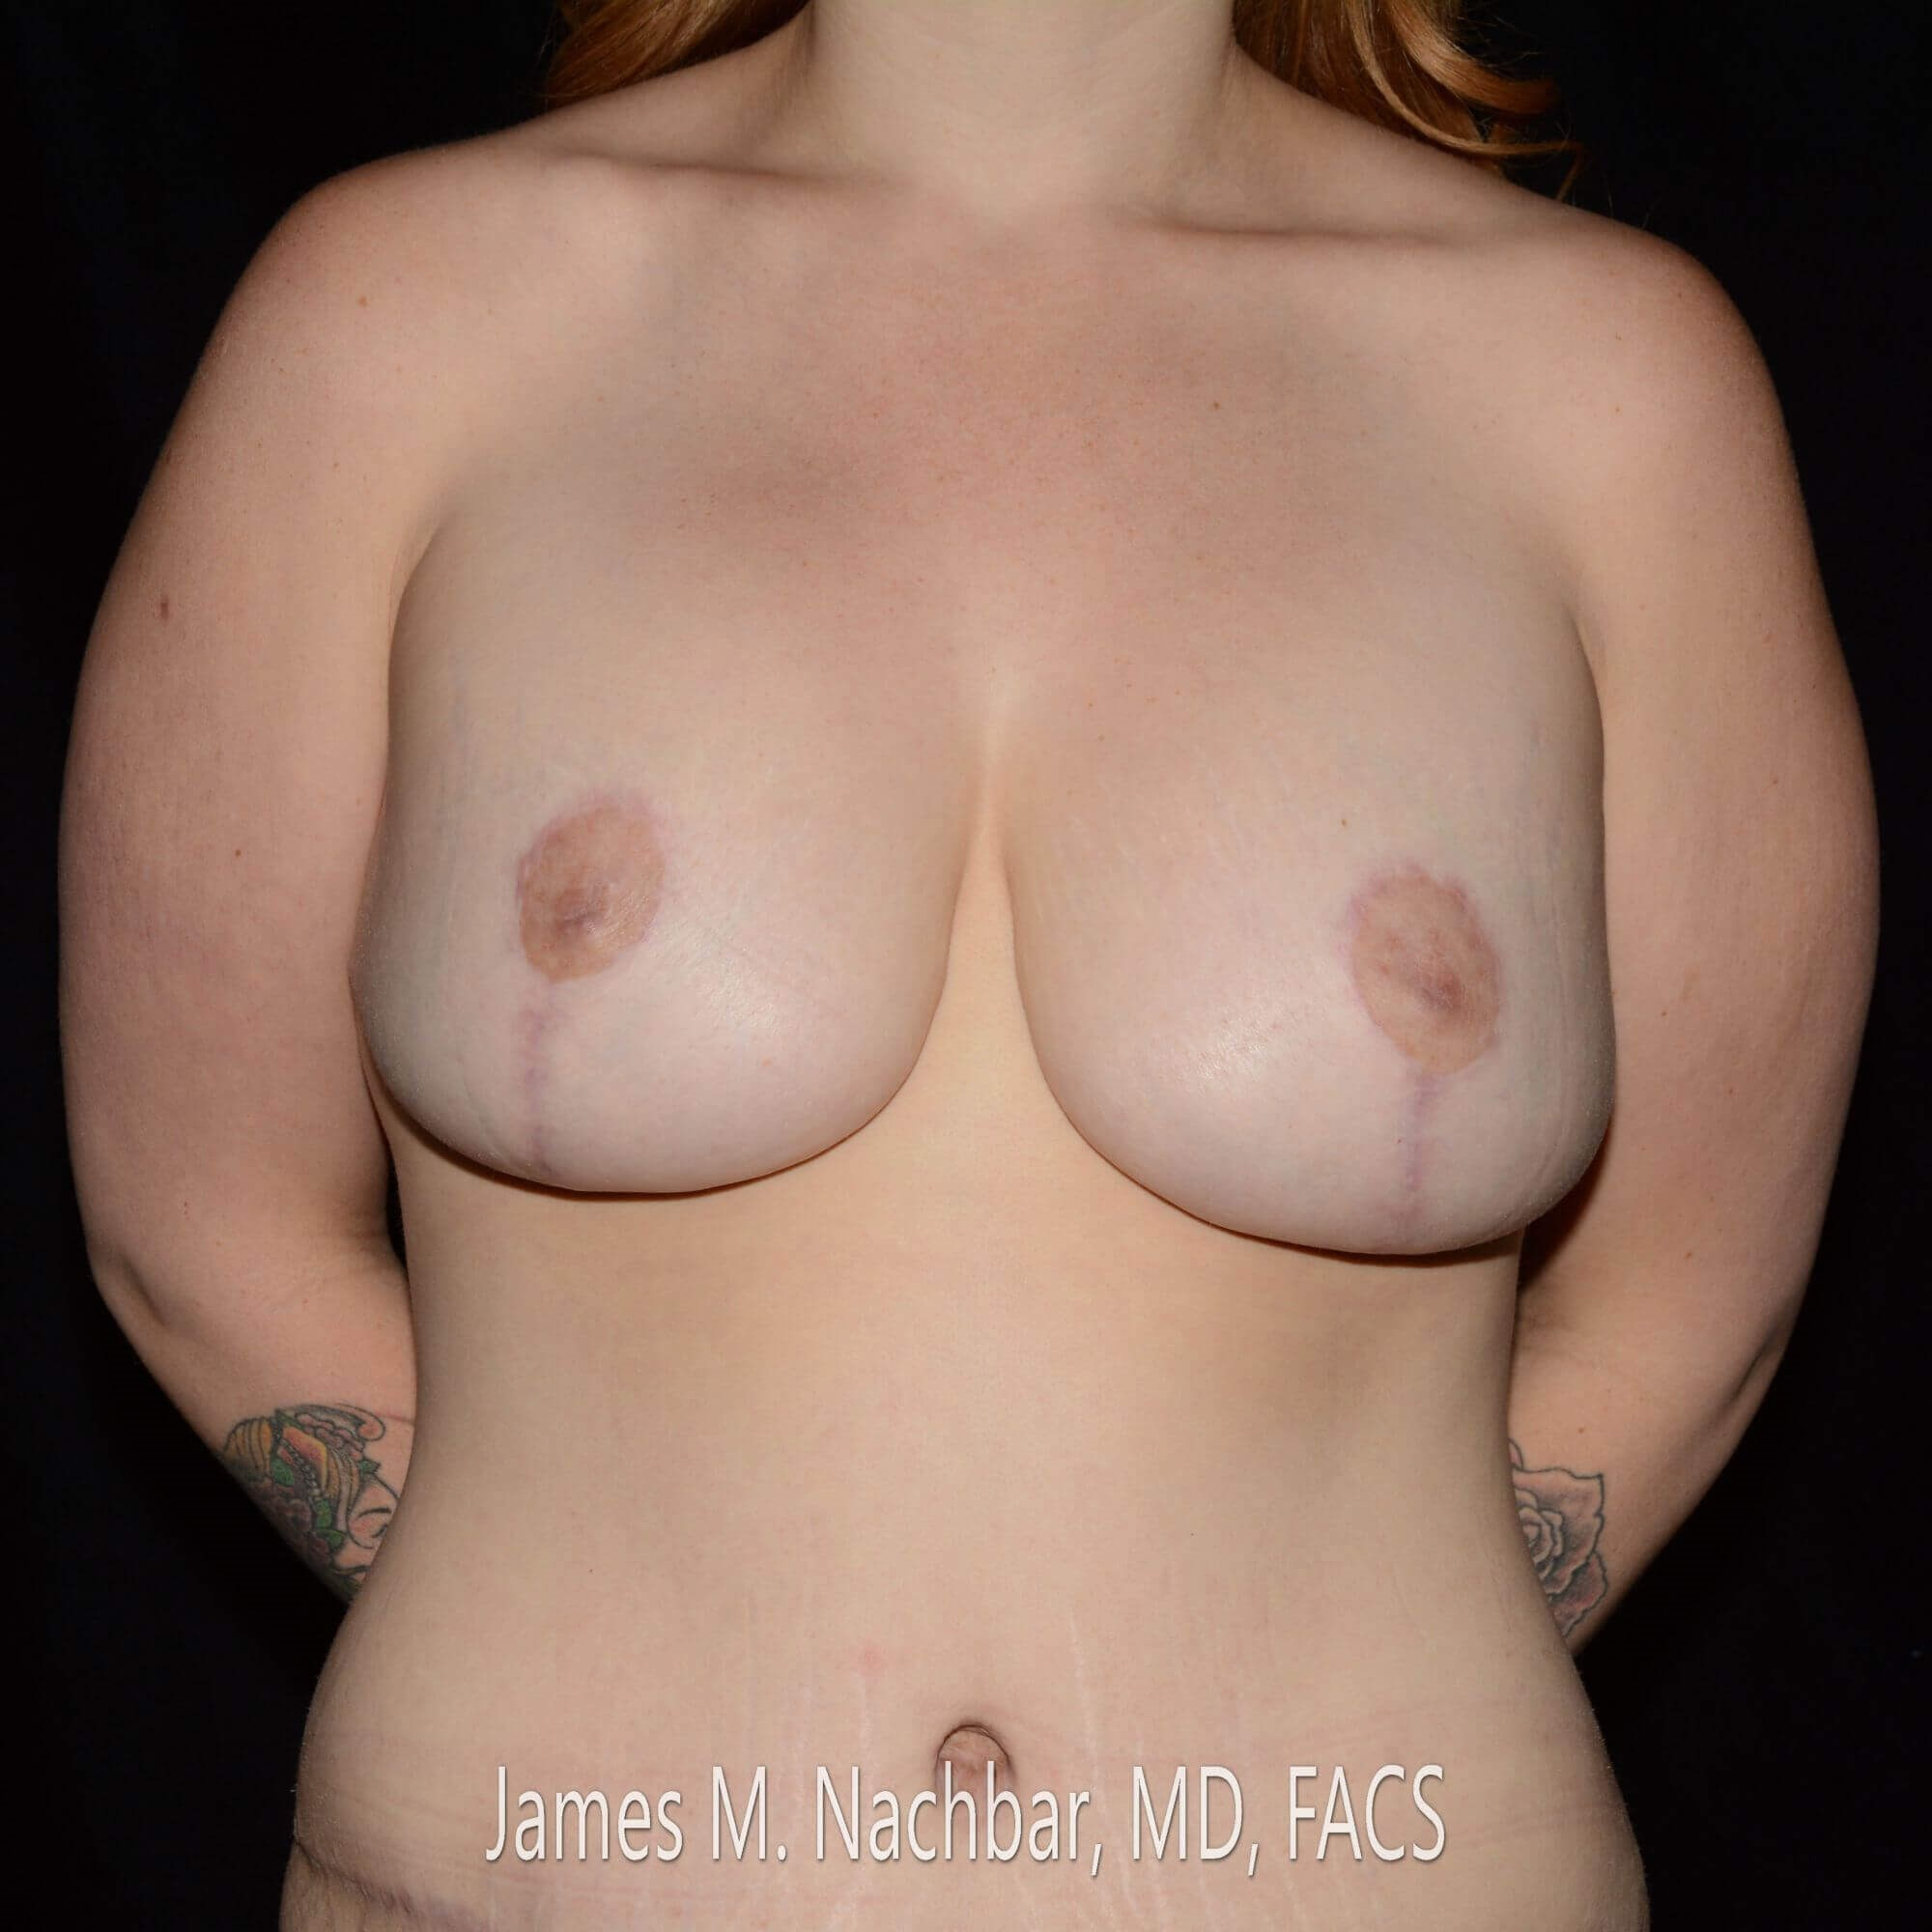 Front View, Breasts 5 Months After